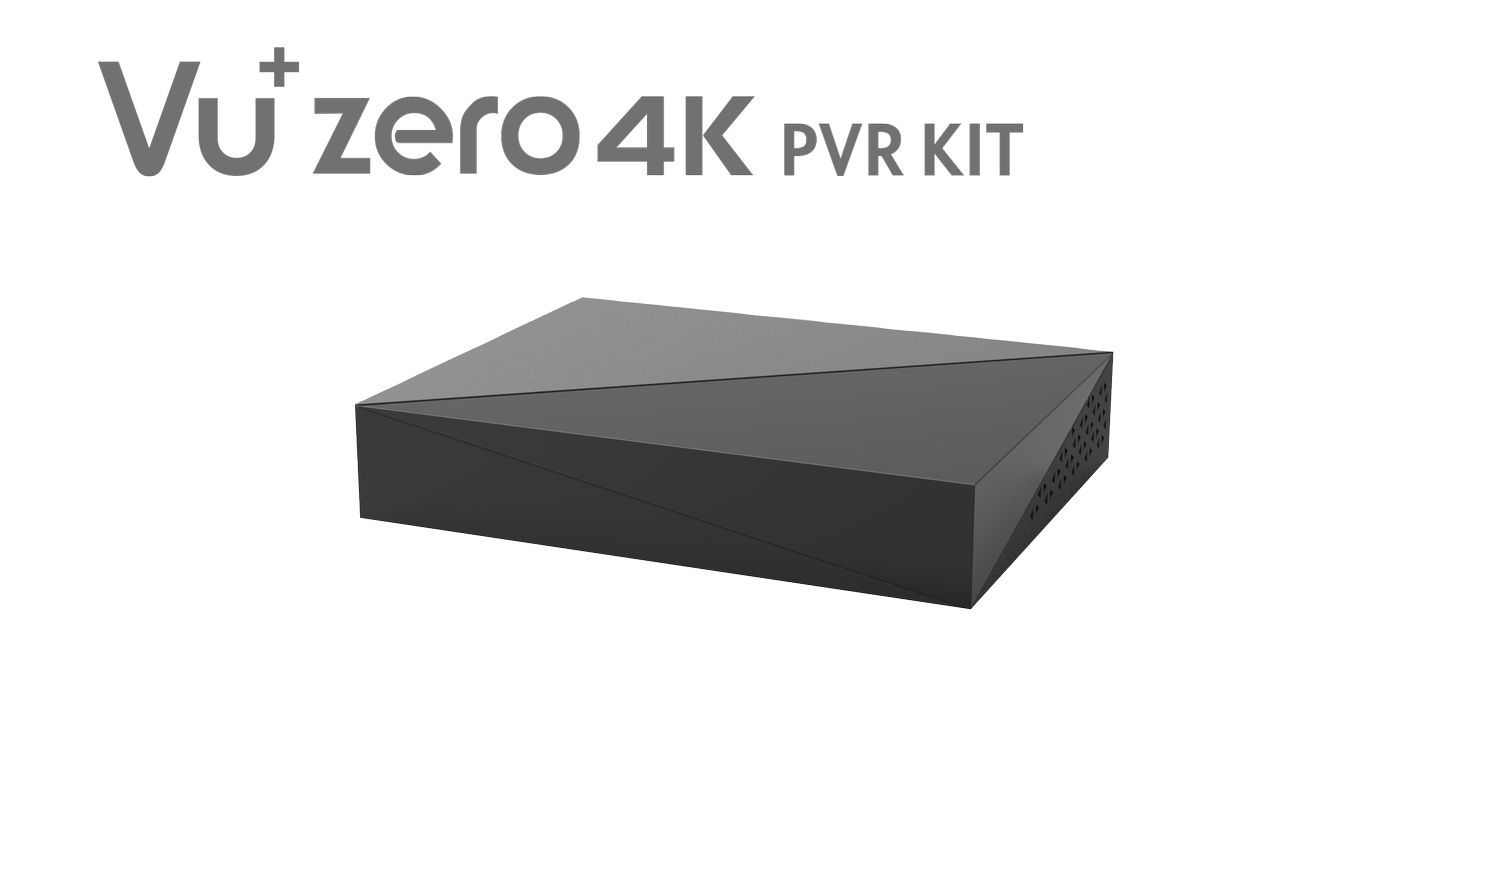 VU+Zero 4K PVR Kit incl. 1TB HDD